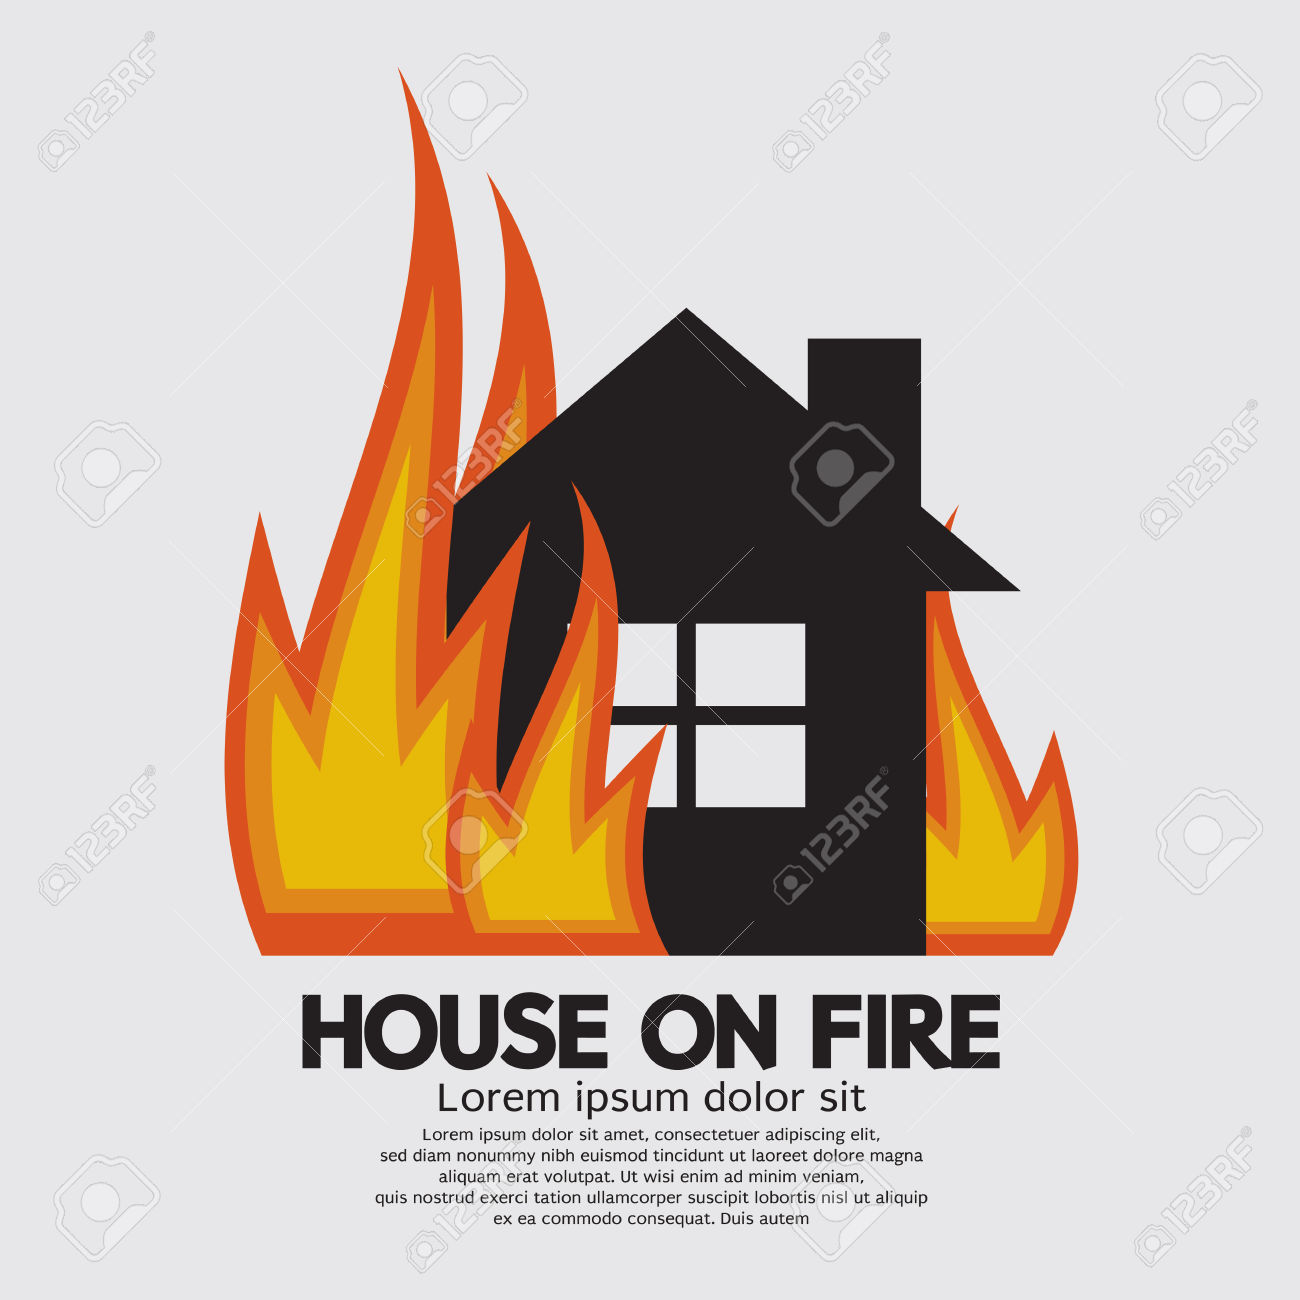 House Fire: House On Fire Illustration-house fire: House On Fire Illustration-13